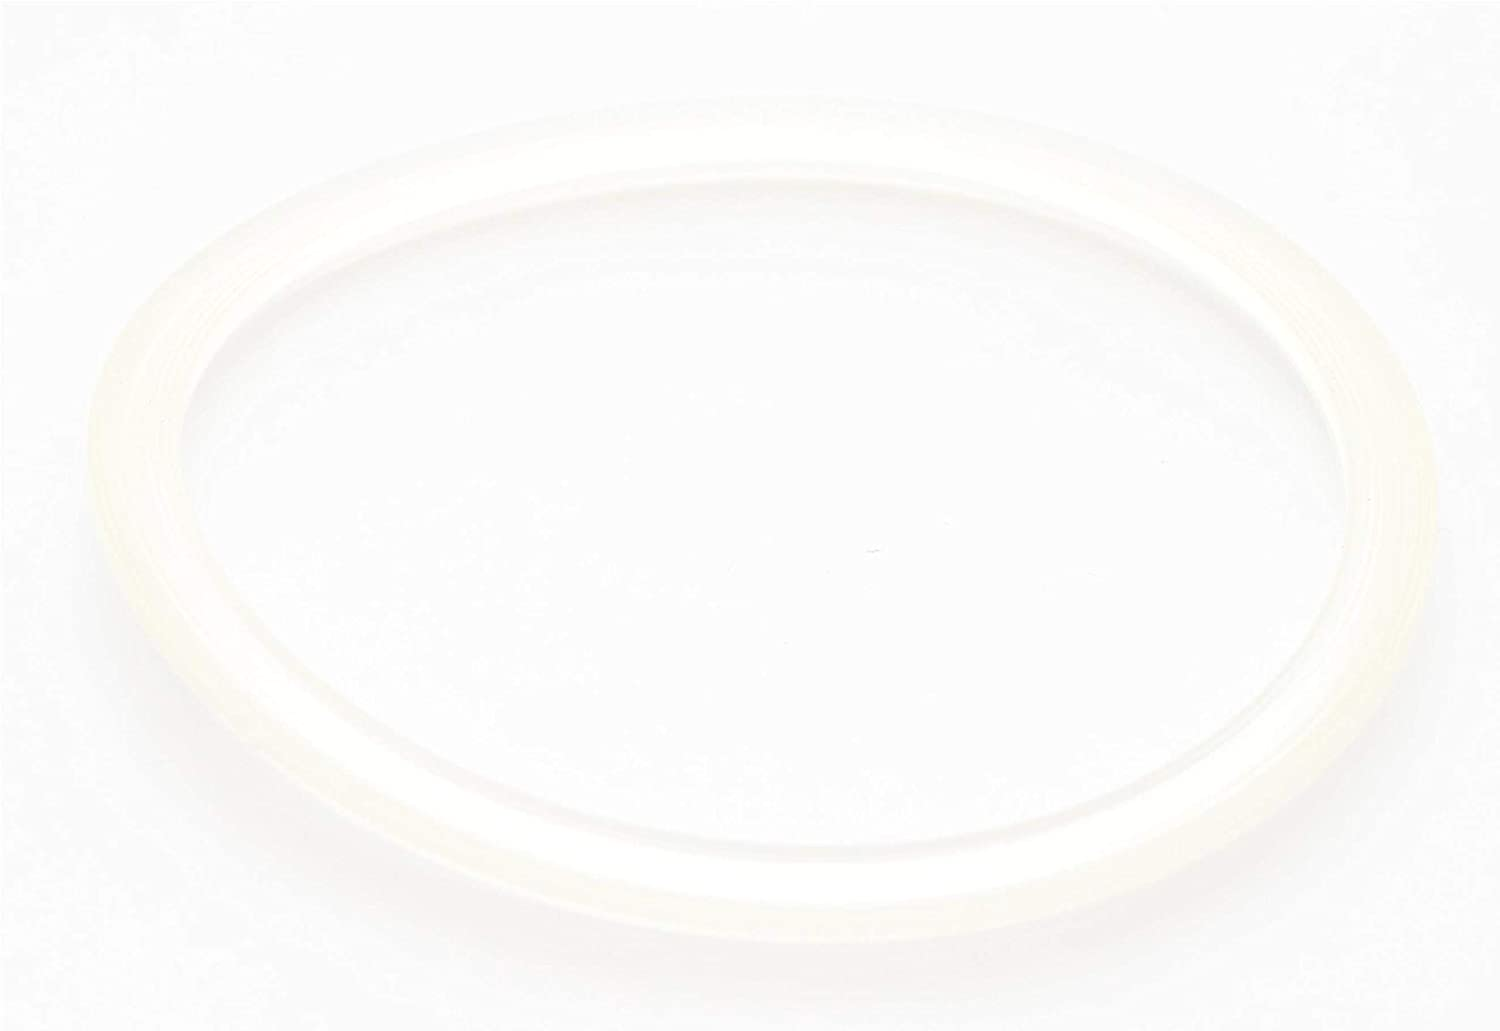 KitchenAid W10292571 Replacement Seal Parts